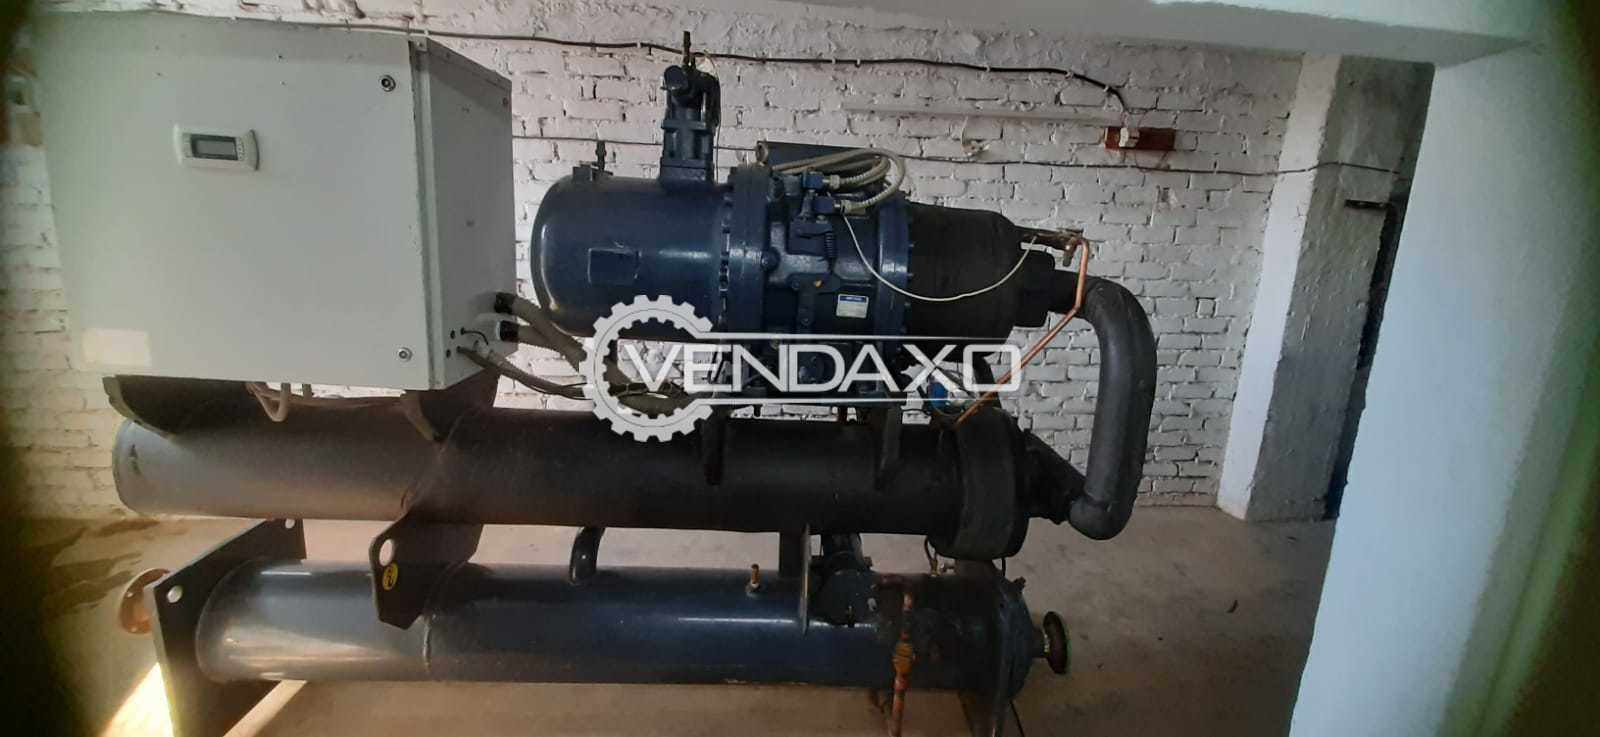 Blue Star LCVX1-070 OLC Water Cooled Chiller - 60 TR, 2011 Model